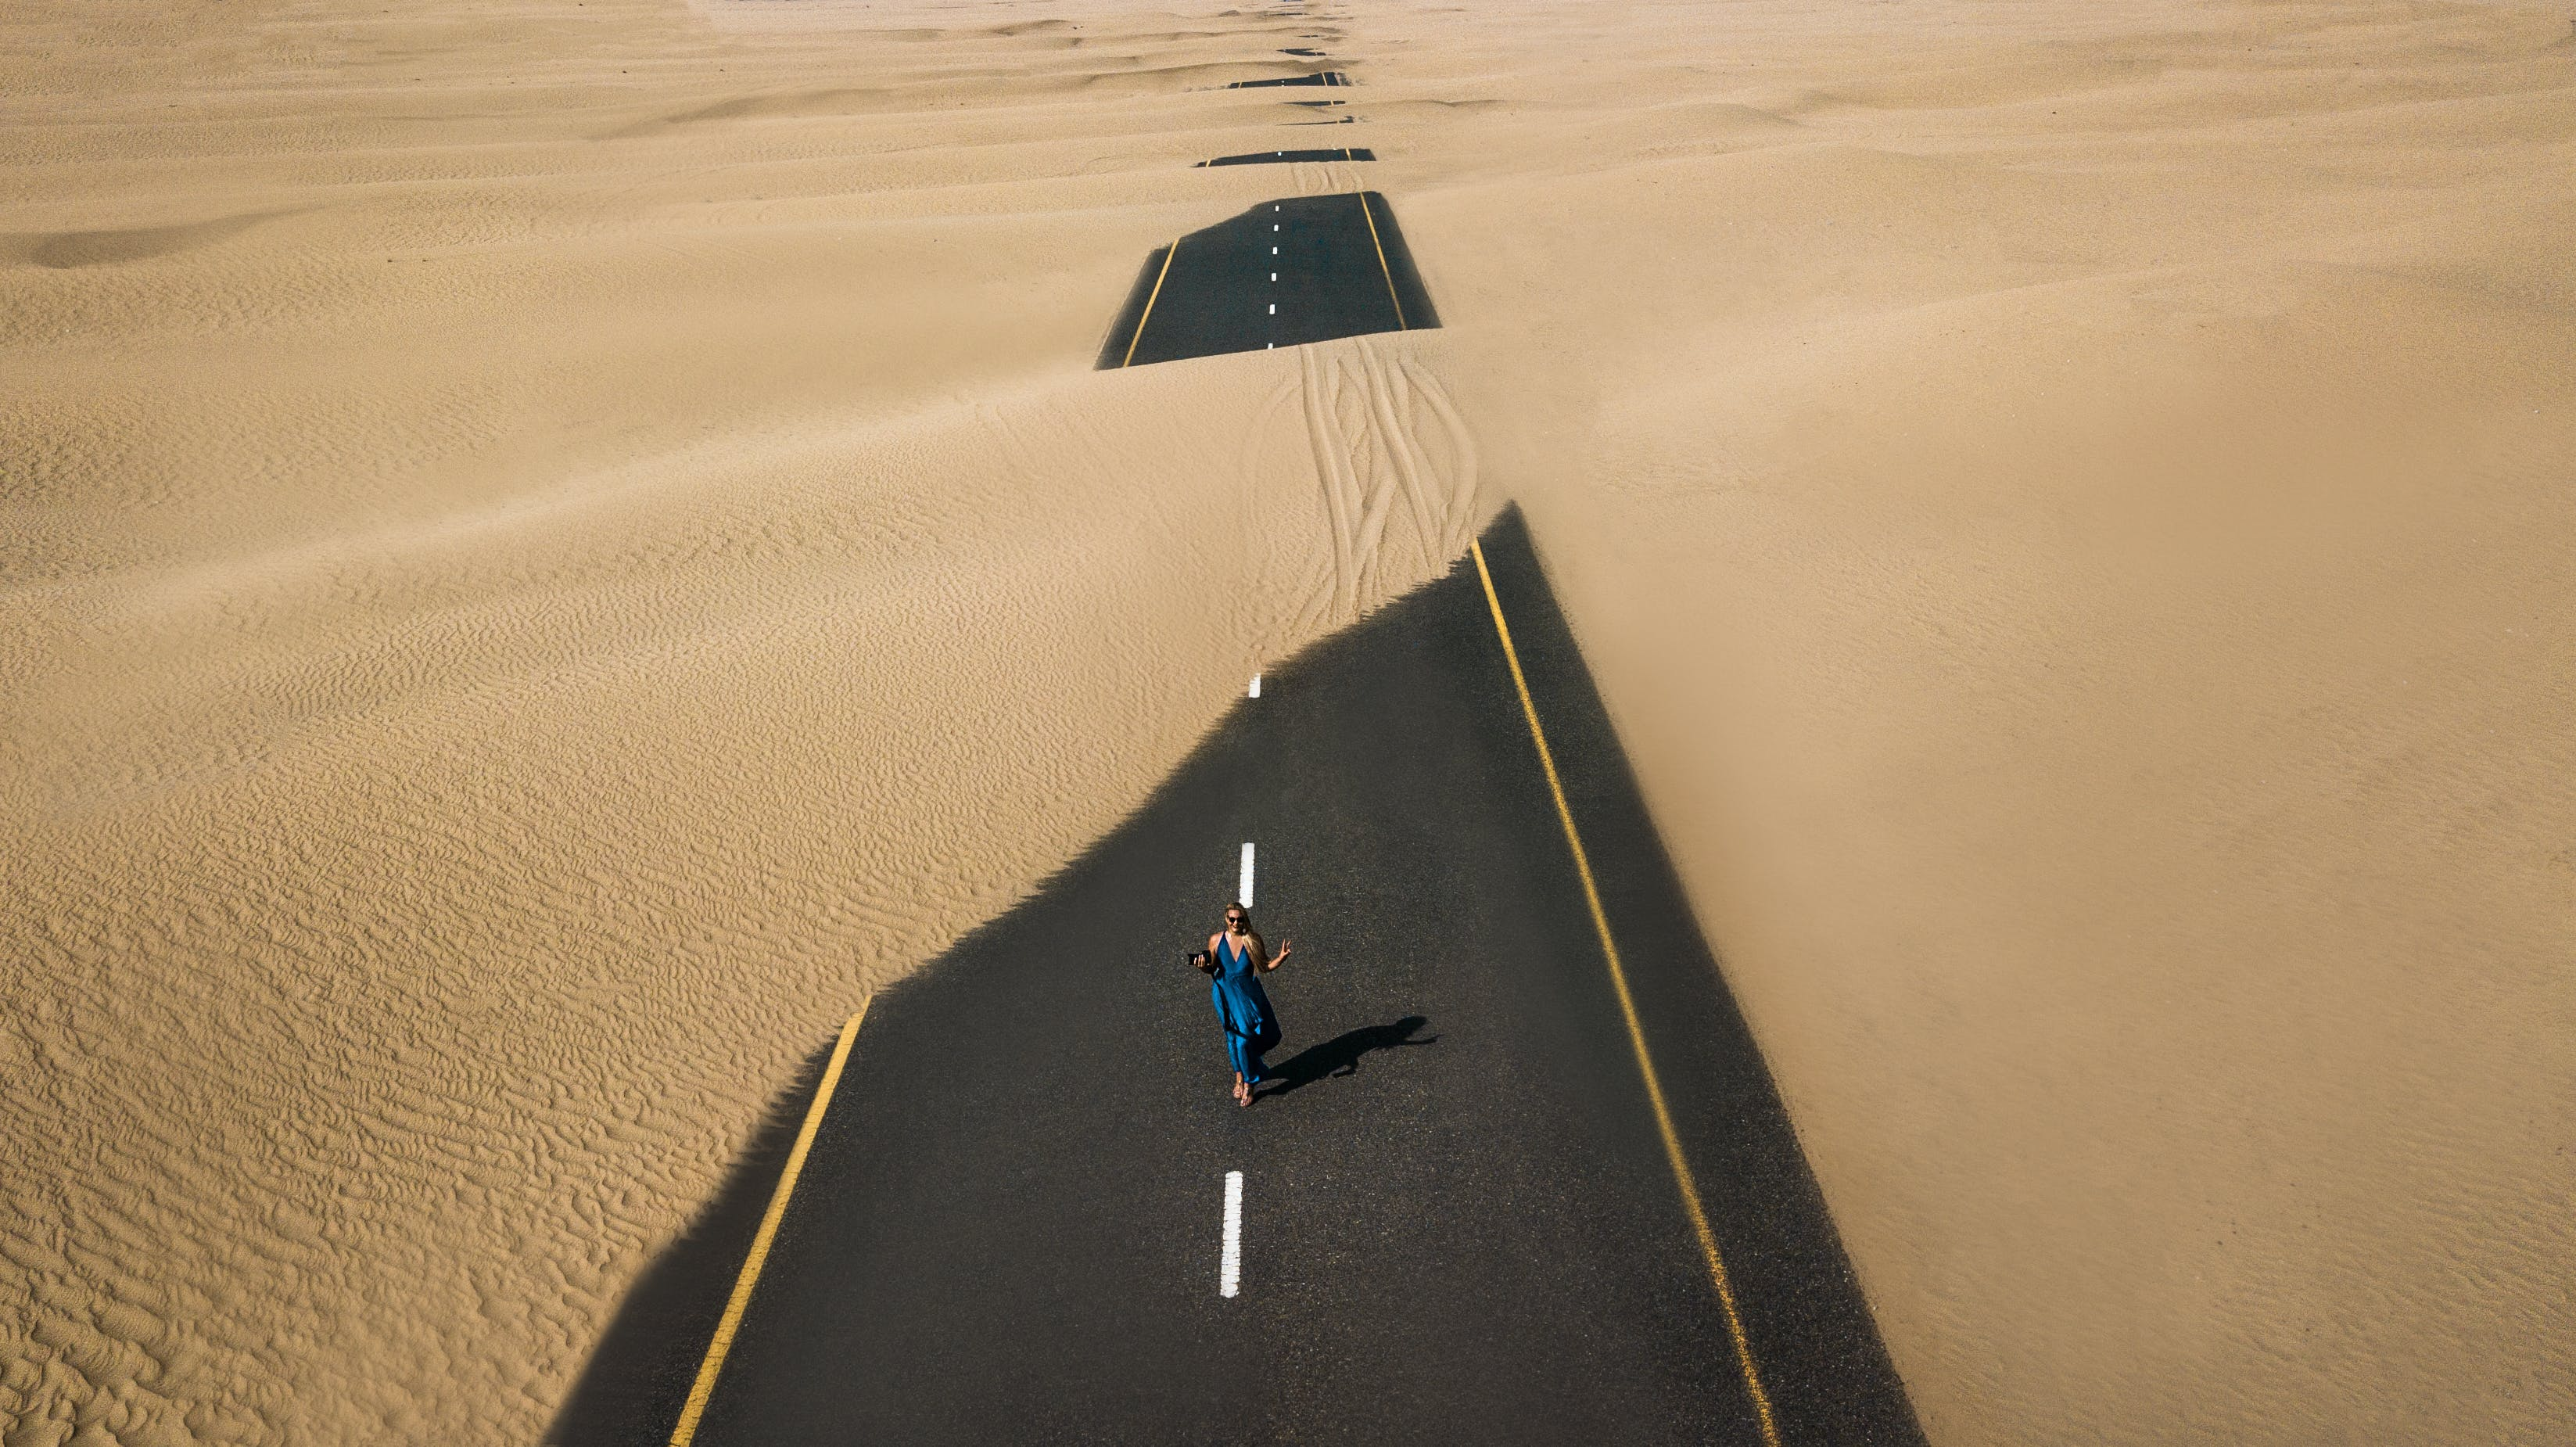 Bird's Eye View Photography of Road in the Middle of Desert